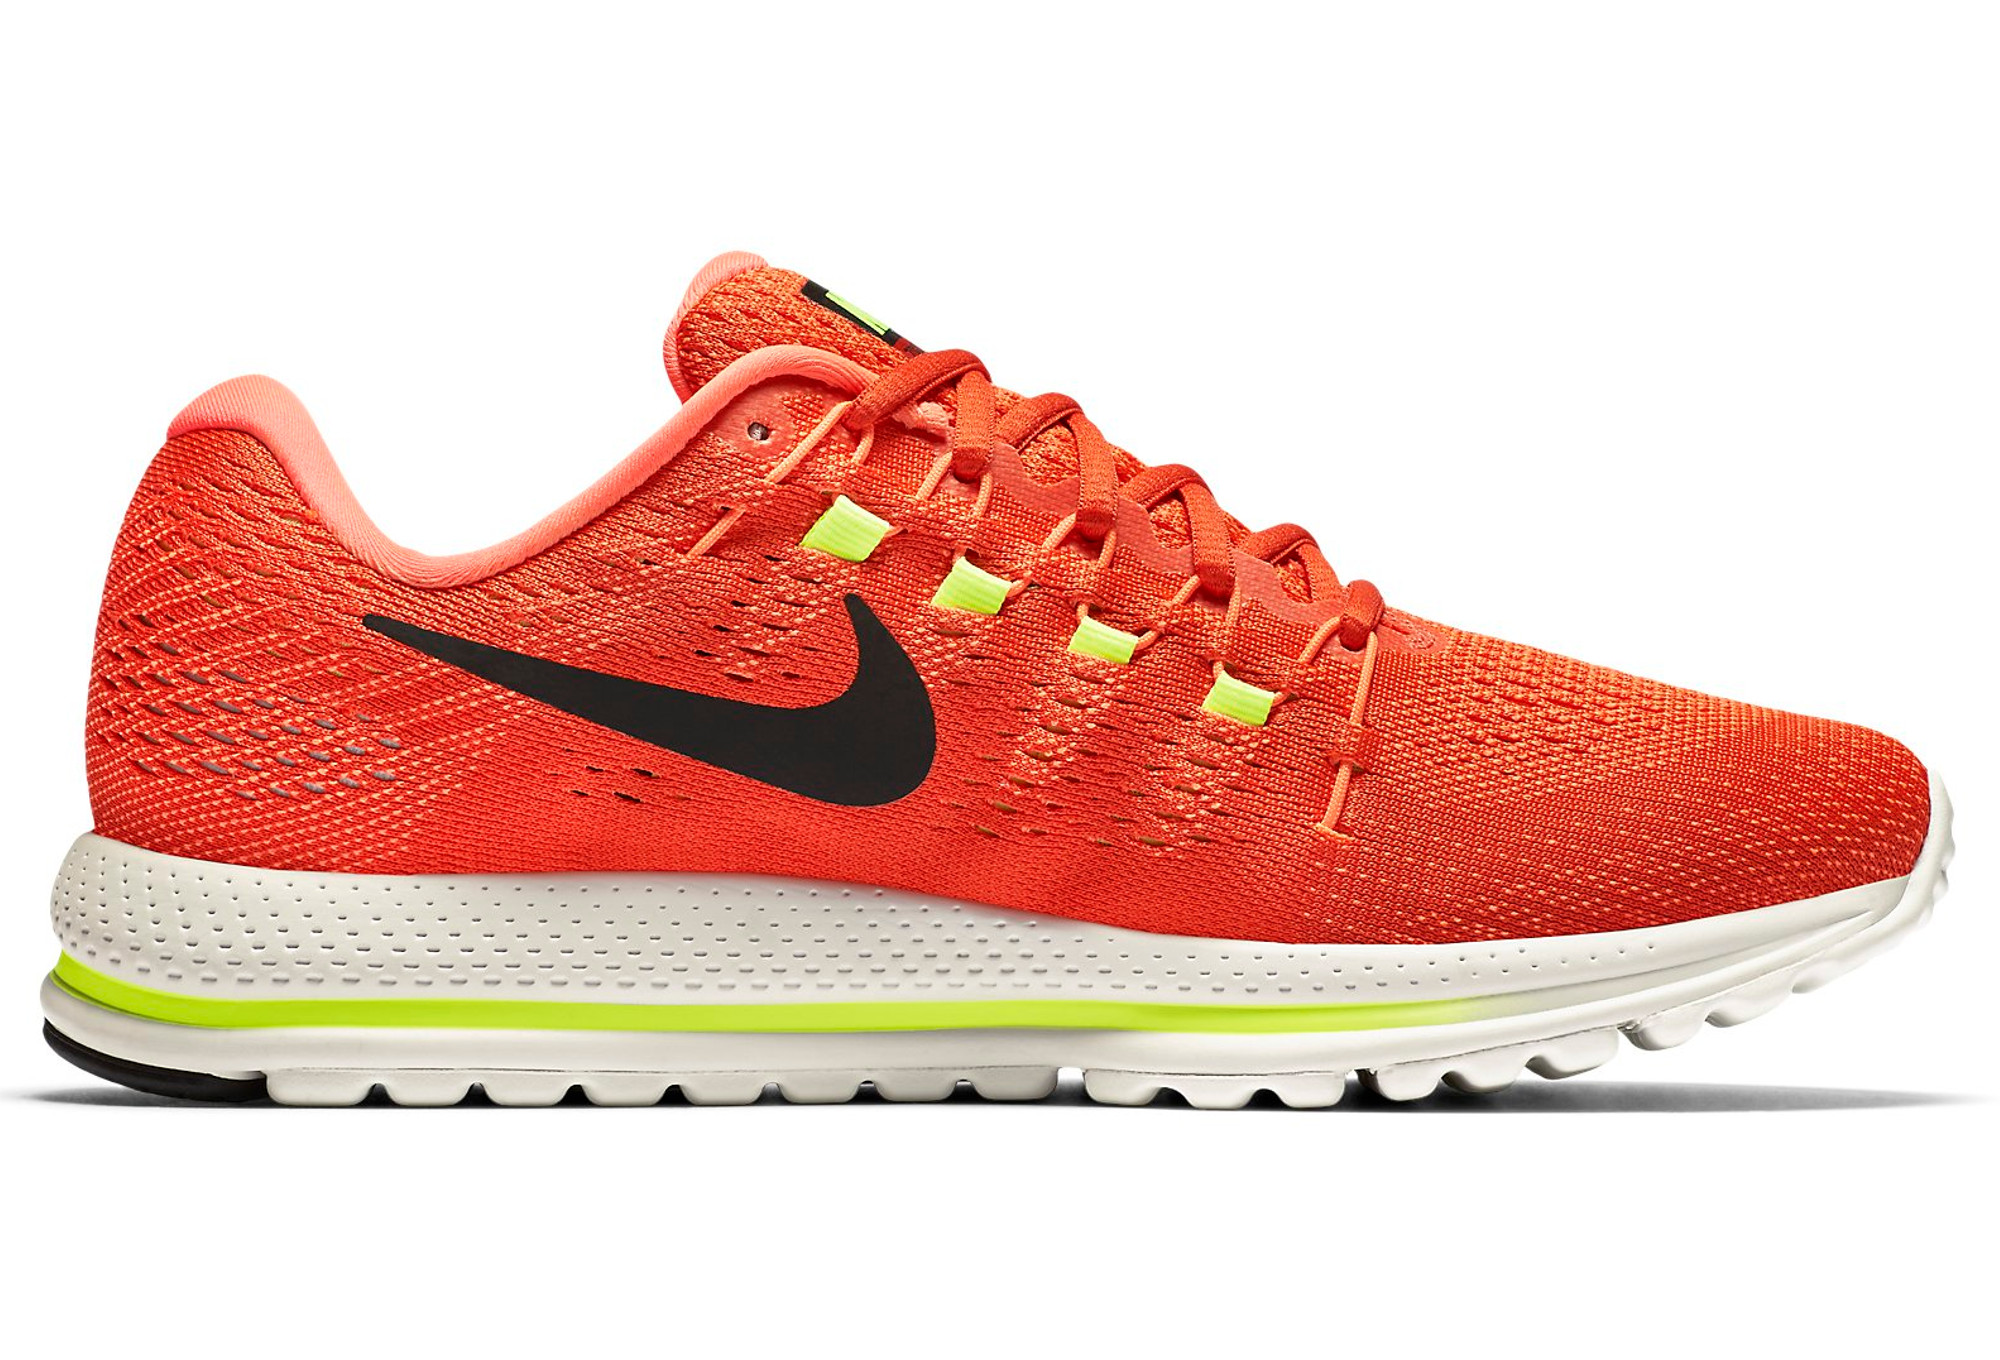 competitive price fd57c c30b3 Chaussures de Running Nike AIR ZOOM VOMERO 12 Orange